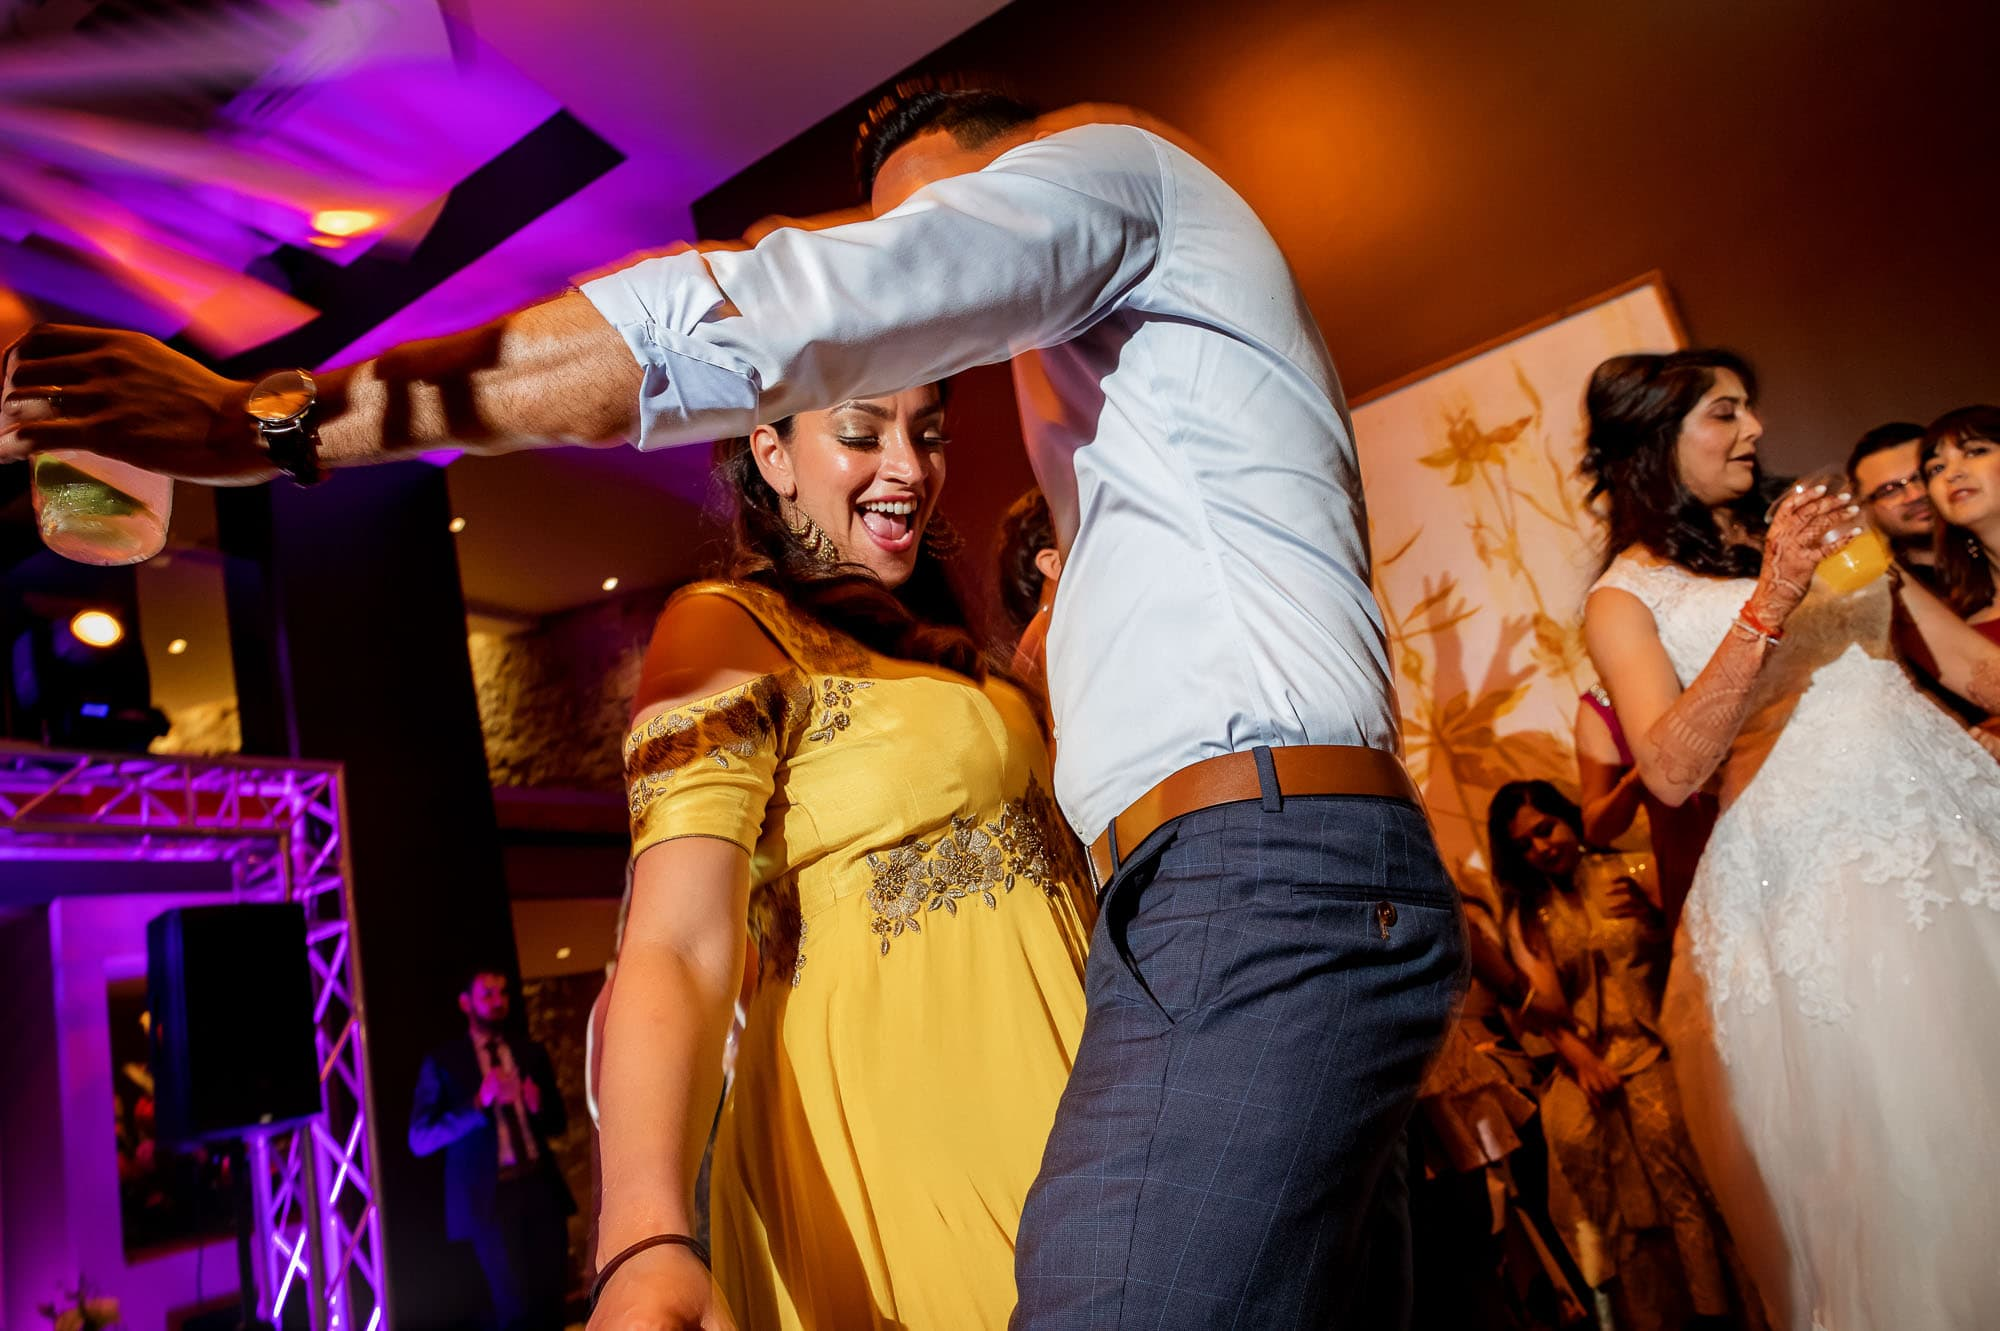 Ripping up the dance floor at this not so traditional Hindu Muslim wedding reception